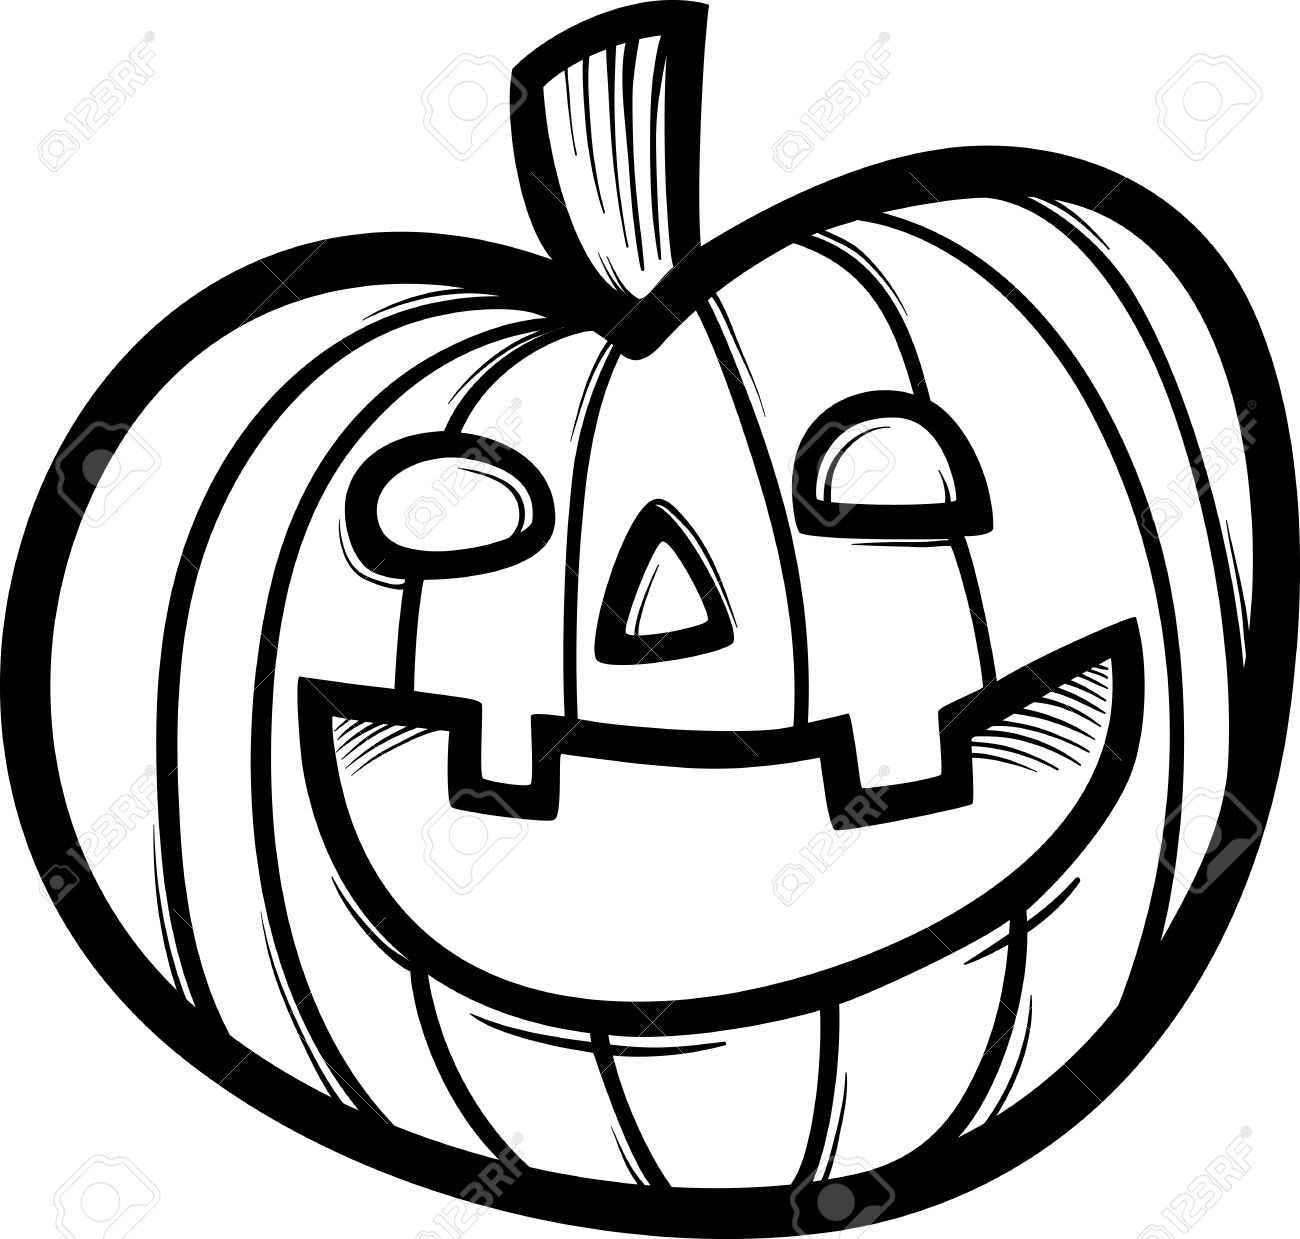 Black And White Cartoon Illustration Of Spooky Halloween Pumpkin